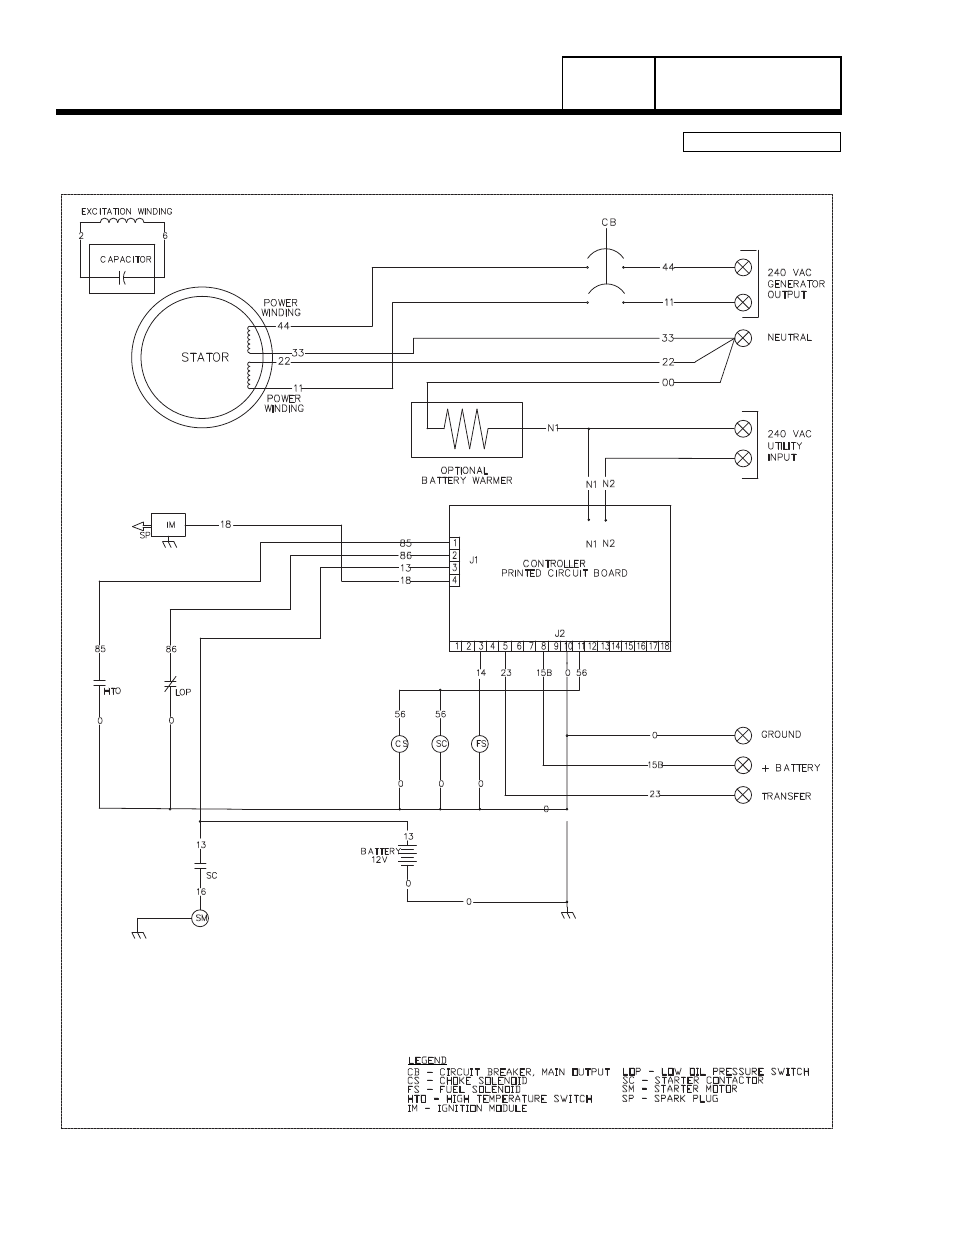 8 Kw Generac Wiring Diagram Diagrams 20kw 8kw Schematic Best Site Harness Install Generator